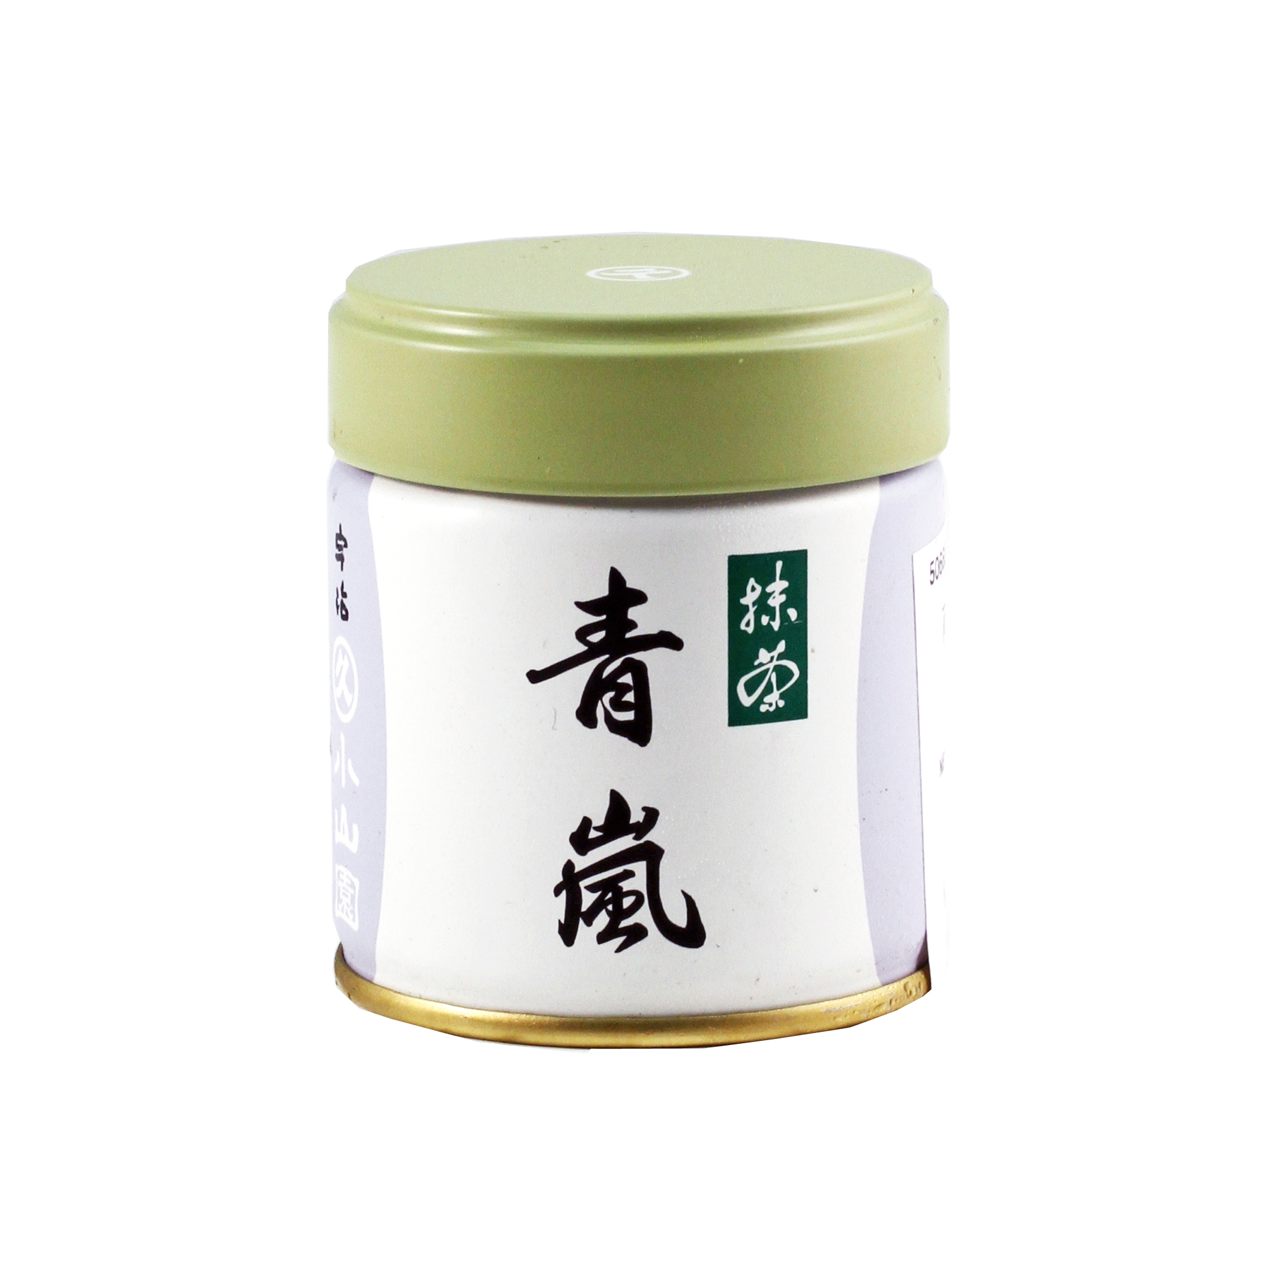 Ao Arashi Stone-Ground Matcha Green Tea Ceremonial Grade 1.4oz (40g) [Japanese Grocery Home Delivery to NY NJ]